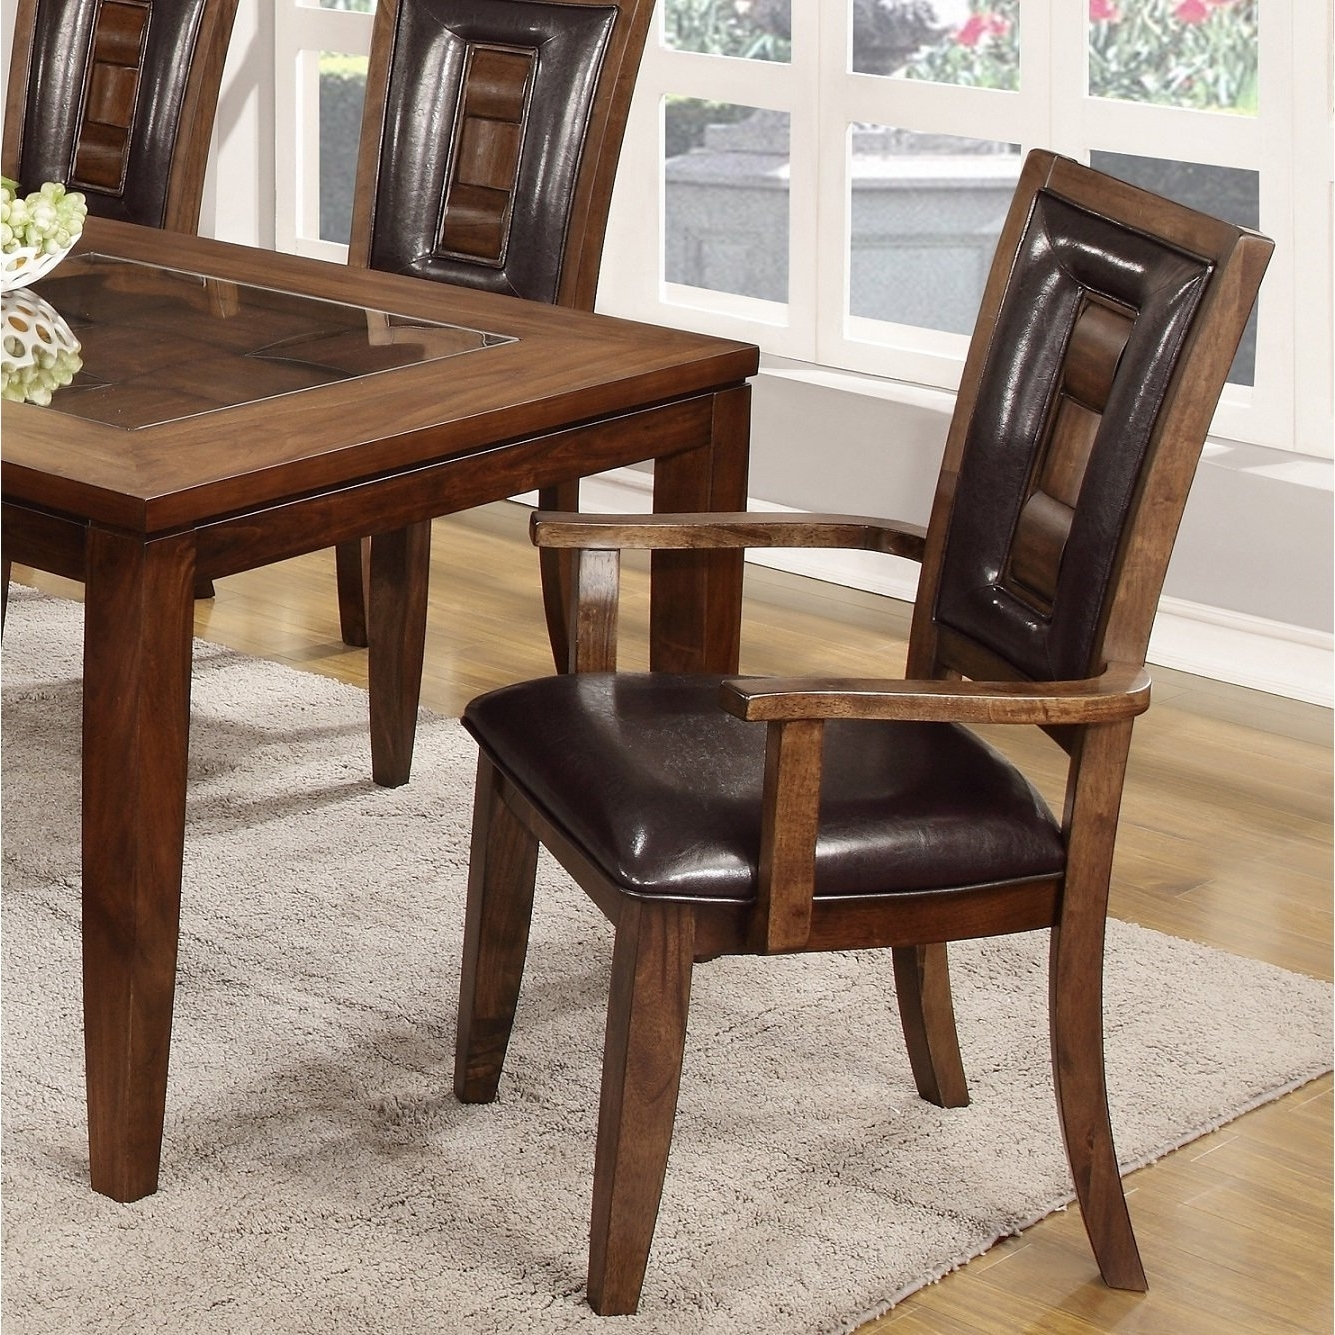 2018 Parquet 7 Piece Dining Sets Regarding Shop Calais 7 Piece Parquet Finish Solid Wood Dining Table With 6 (Gallery 4 of 25)